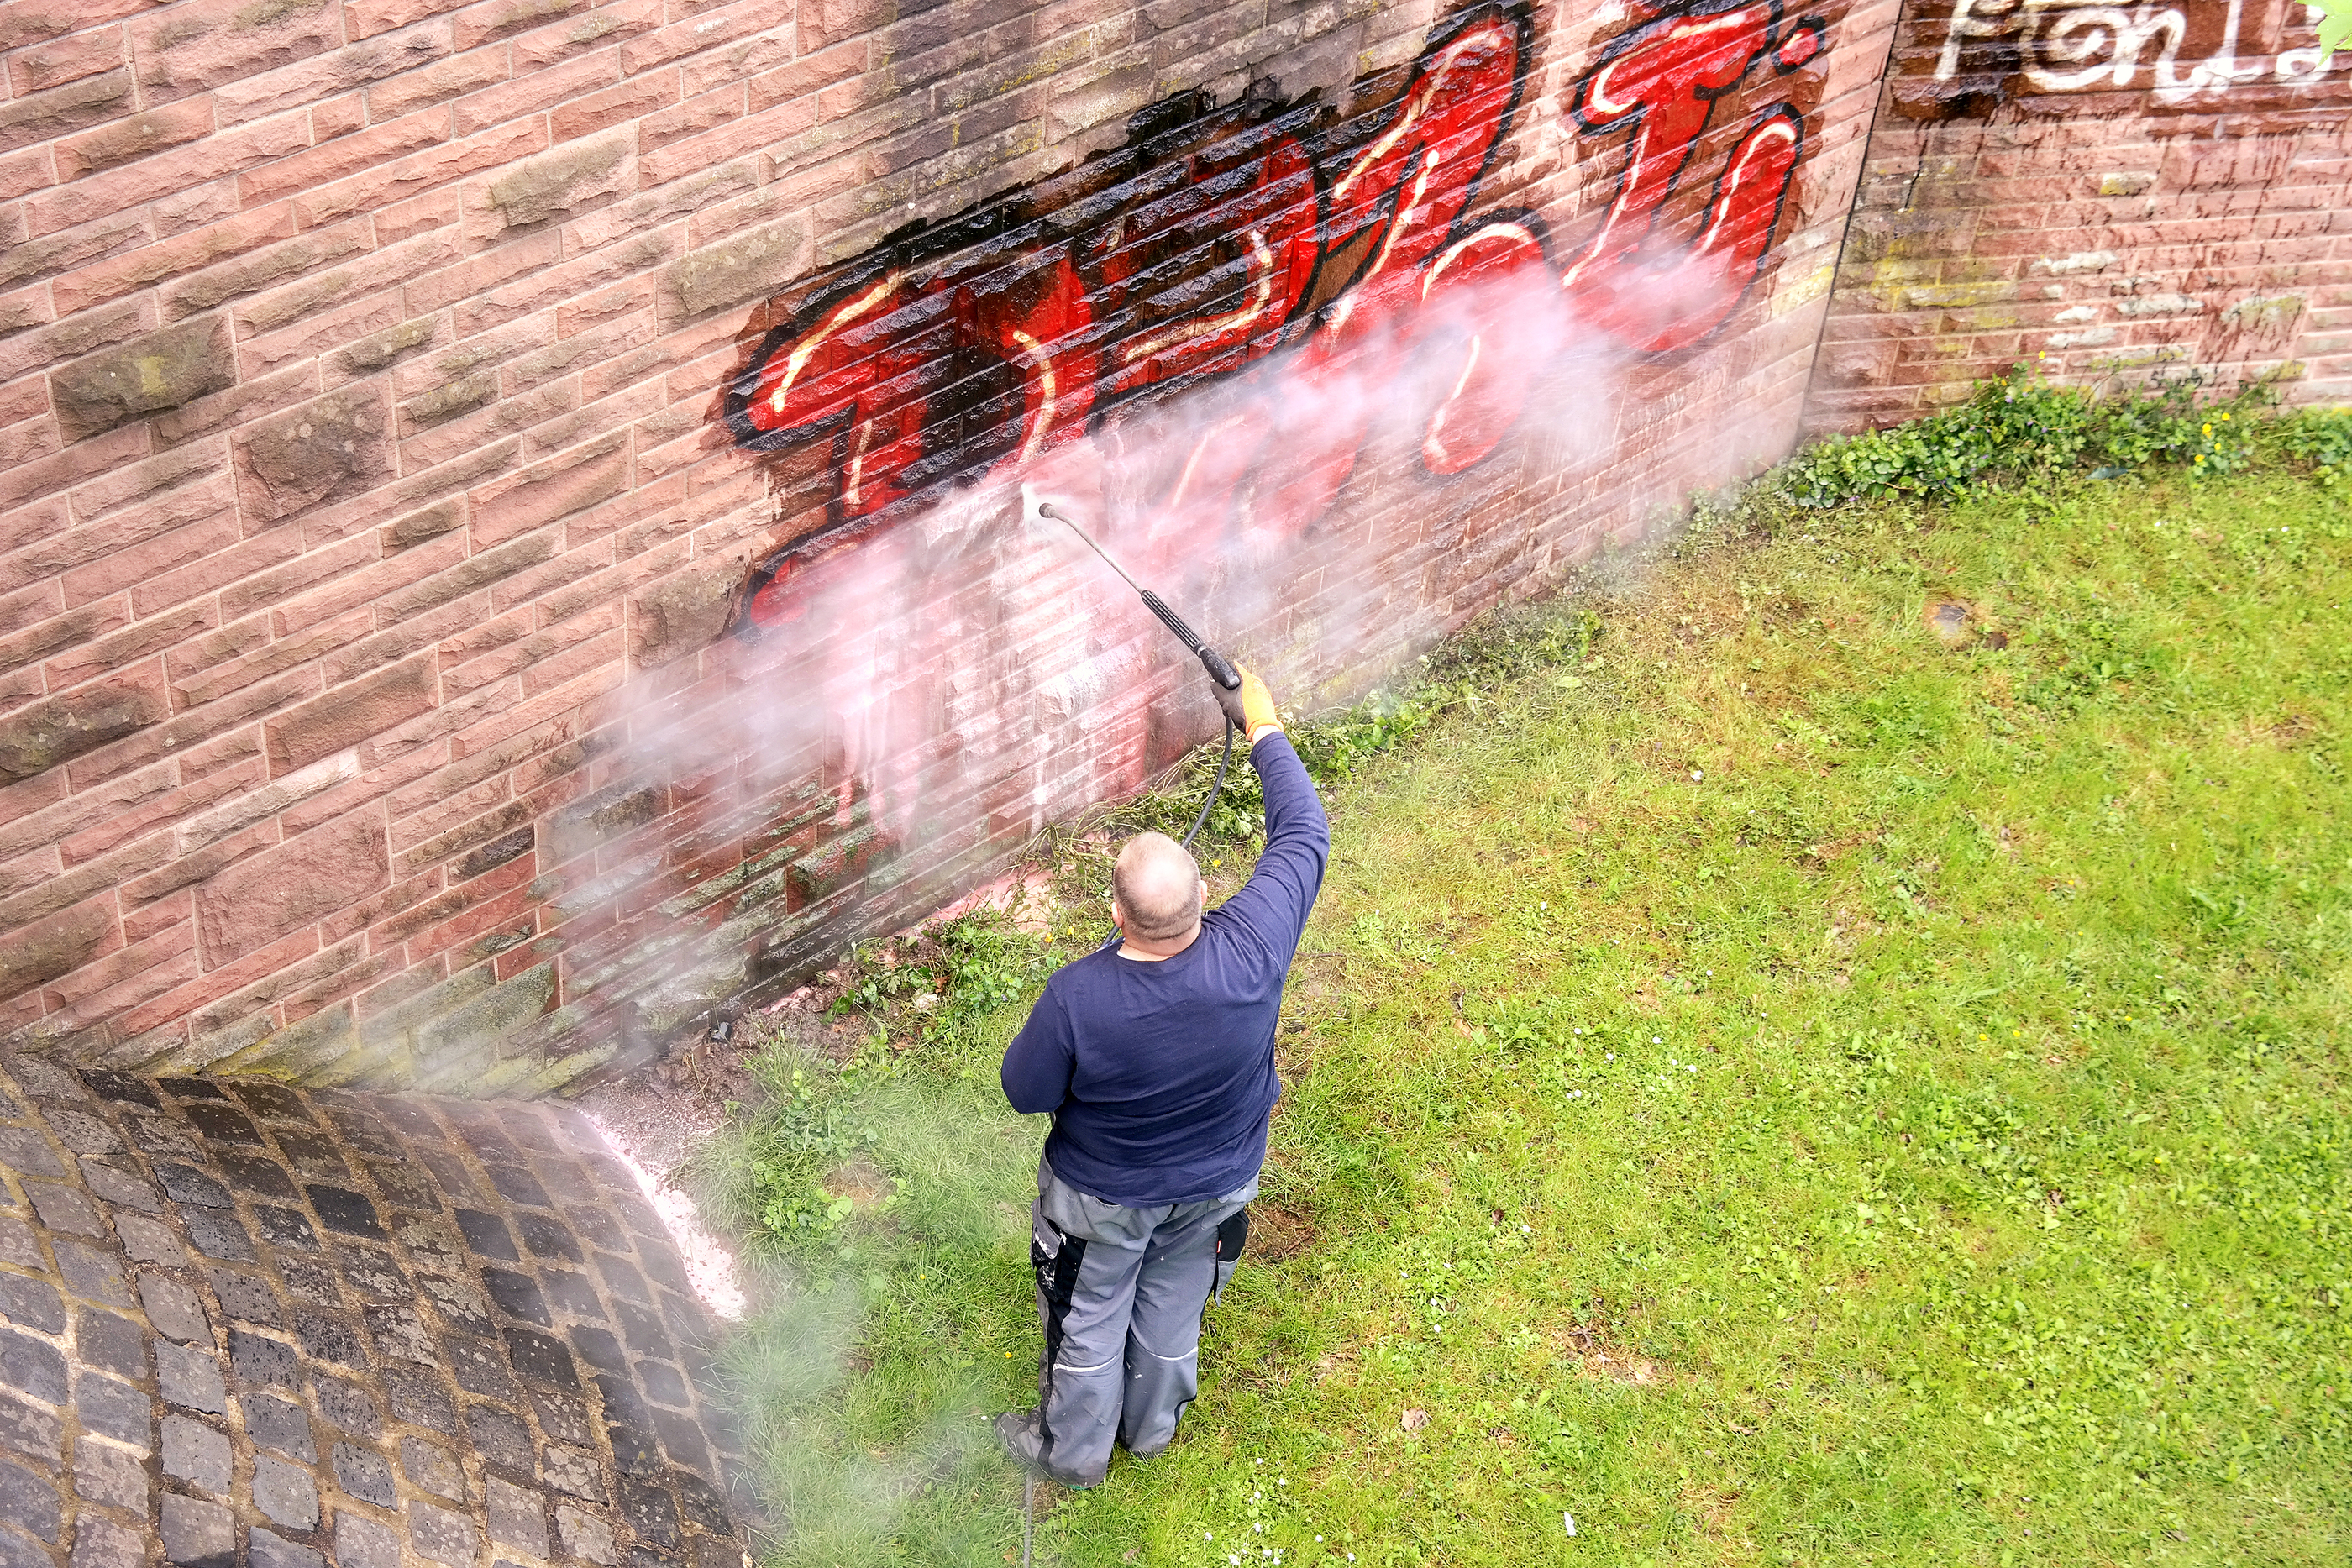 graffiti removal services in clifton tx